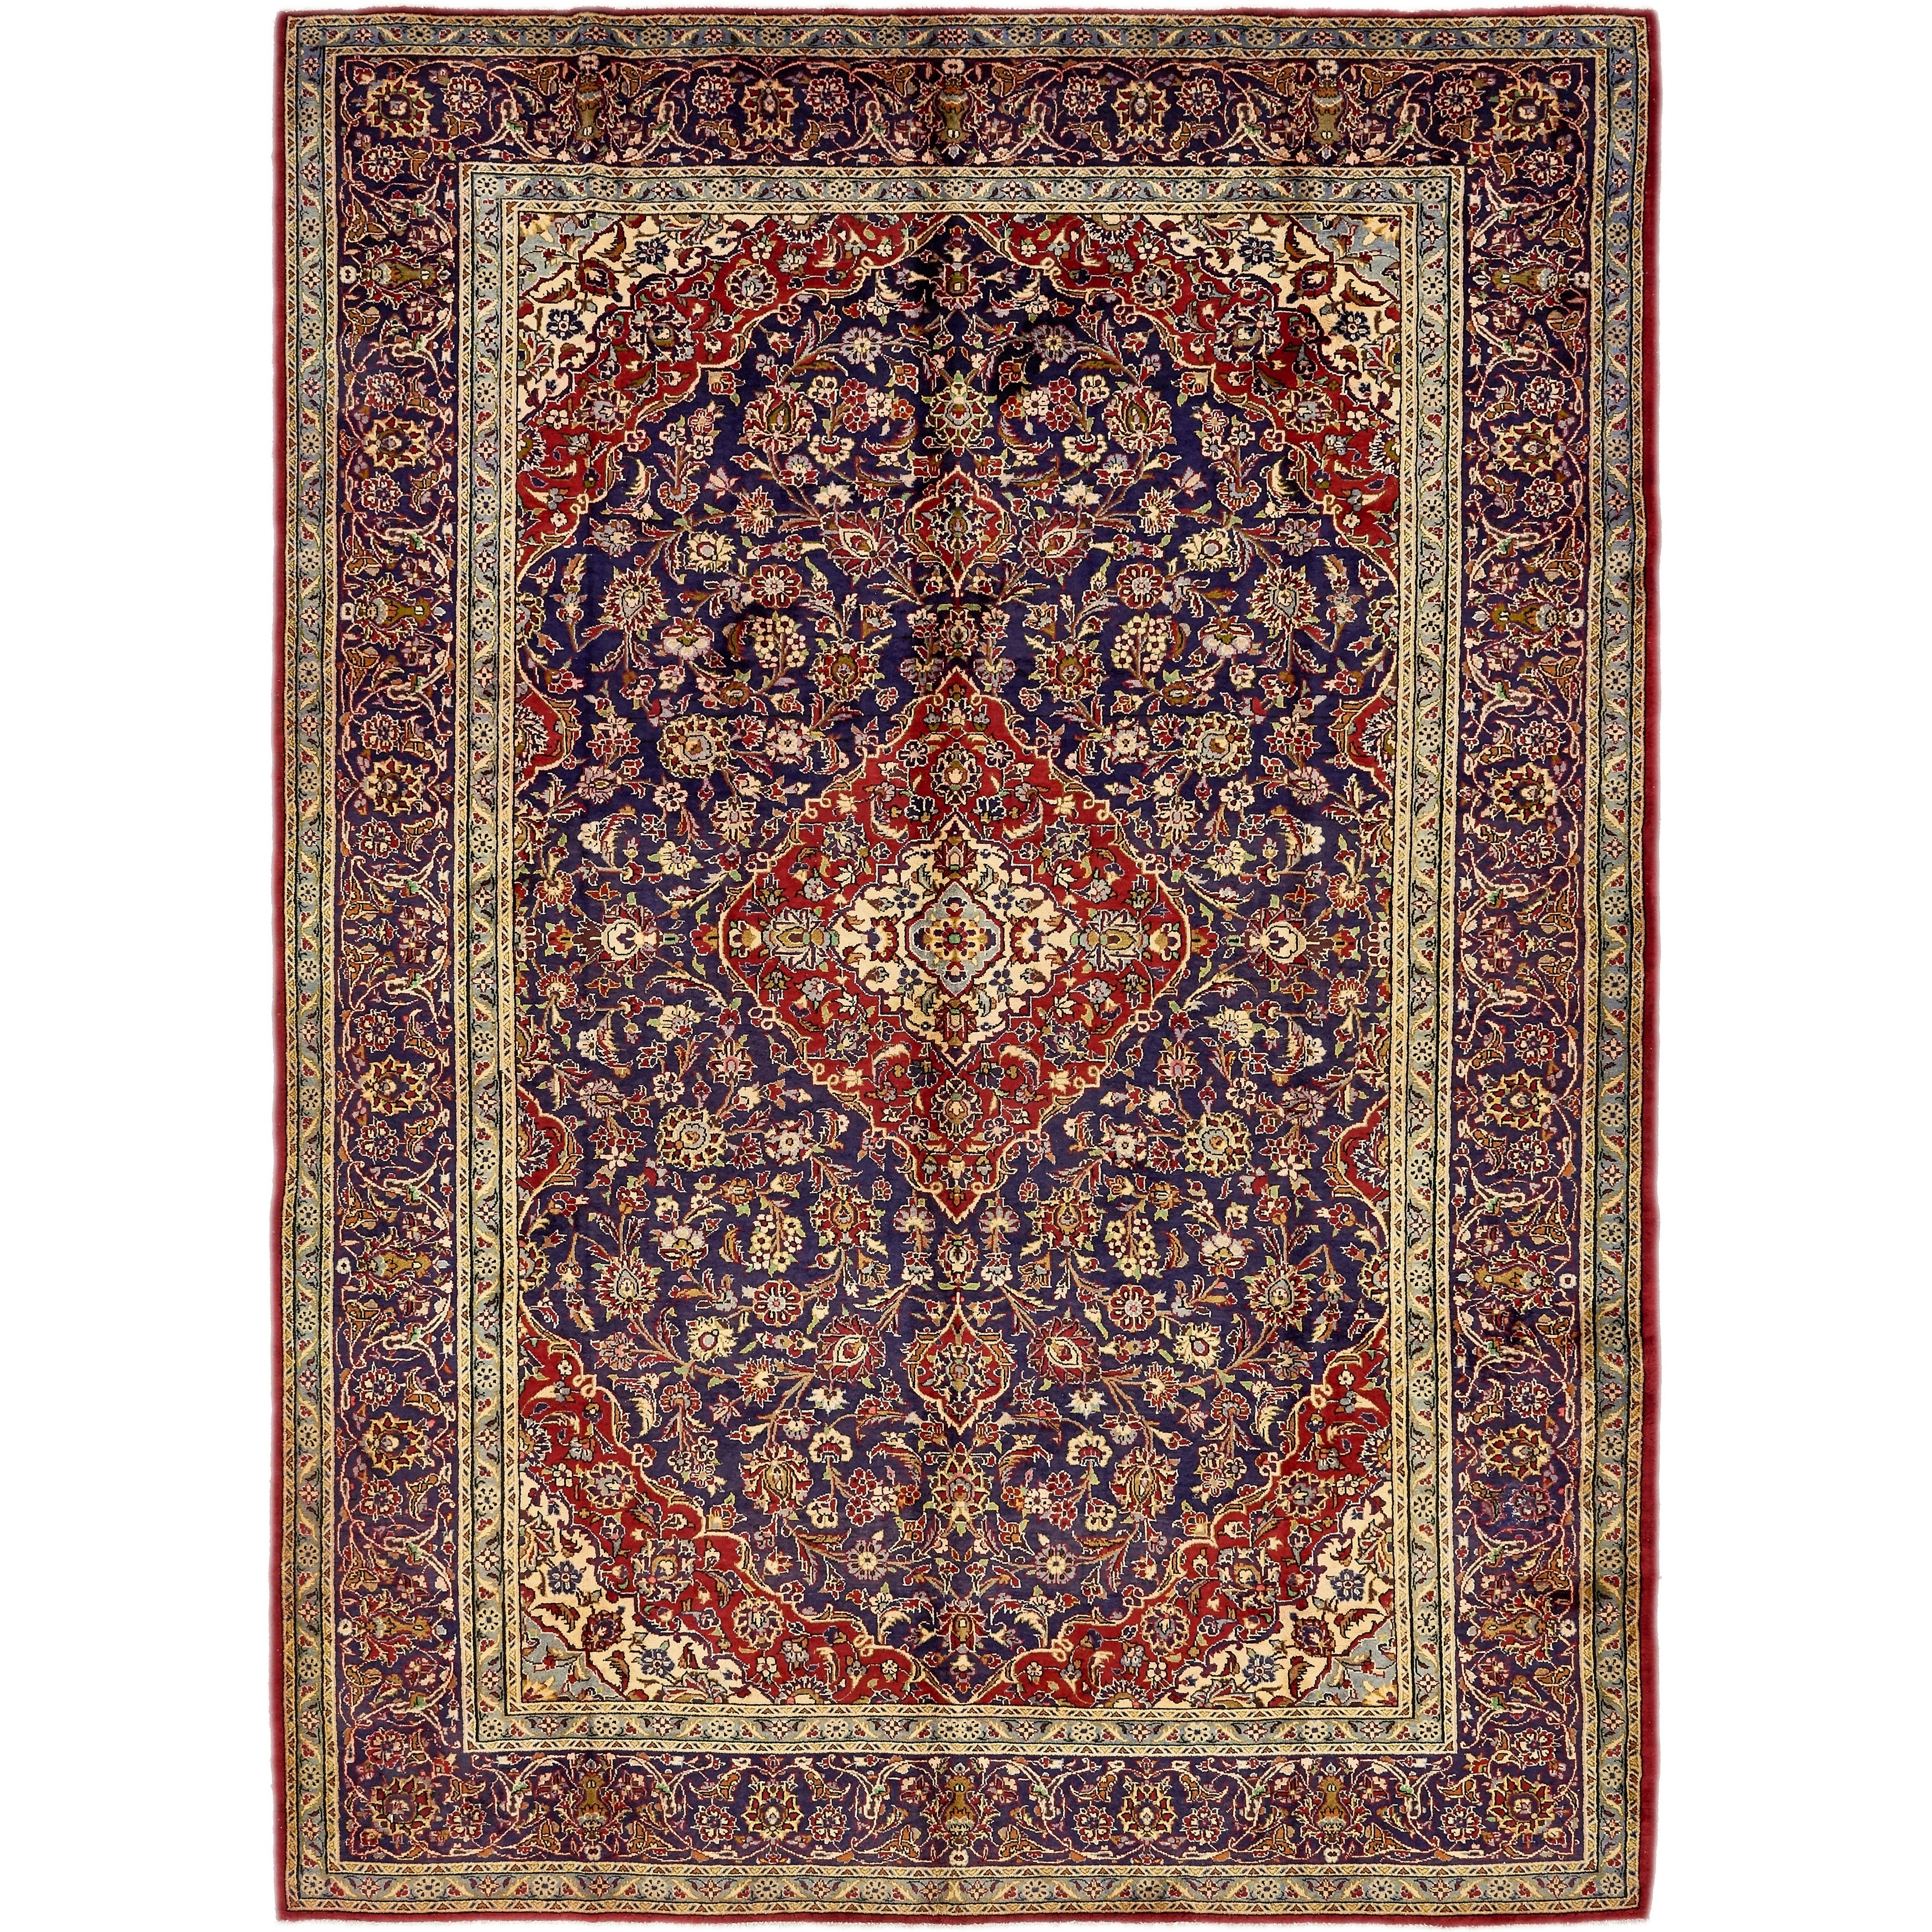 Hand Knotted Kashan Semi Antique Wool Area Rug - 9 9 x 13 5 (Red - 9 9 x 13 5)